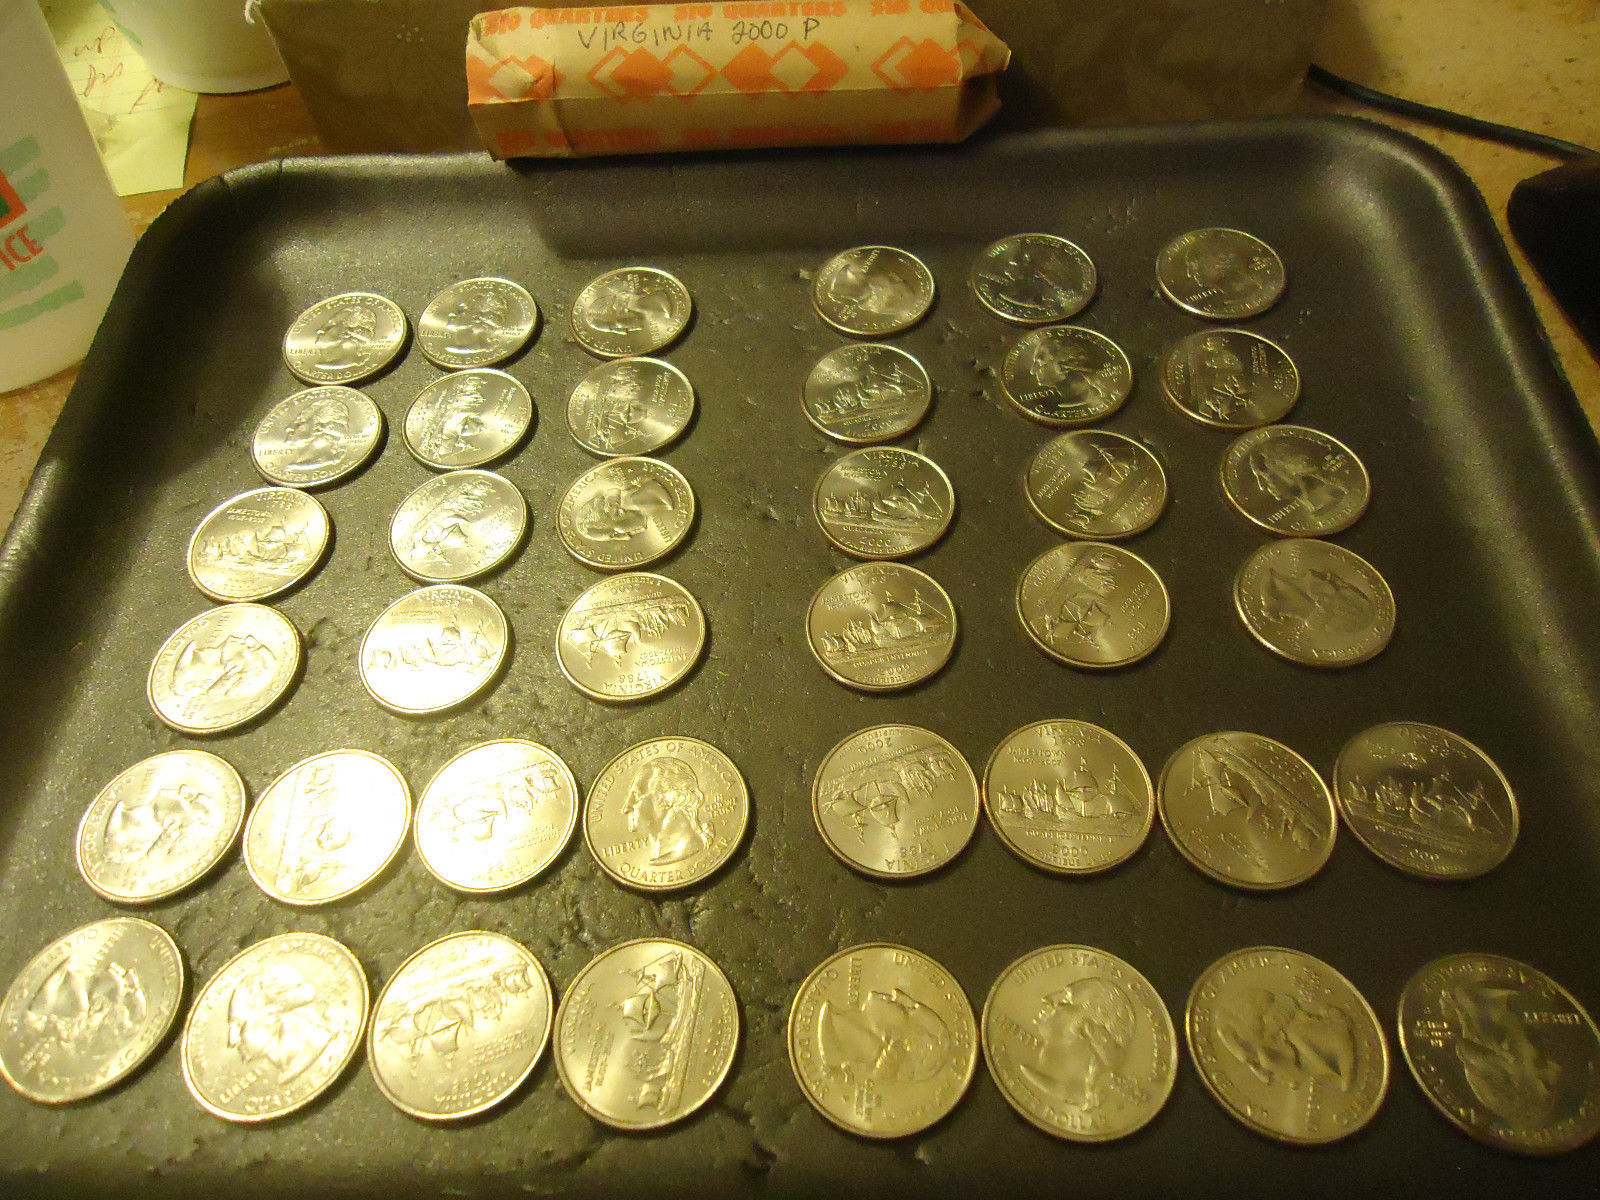 2000-P ROLL OF VIRGINIA QUARTERS  >> COMBINED SHIPPING < - $14.36